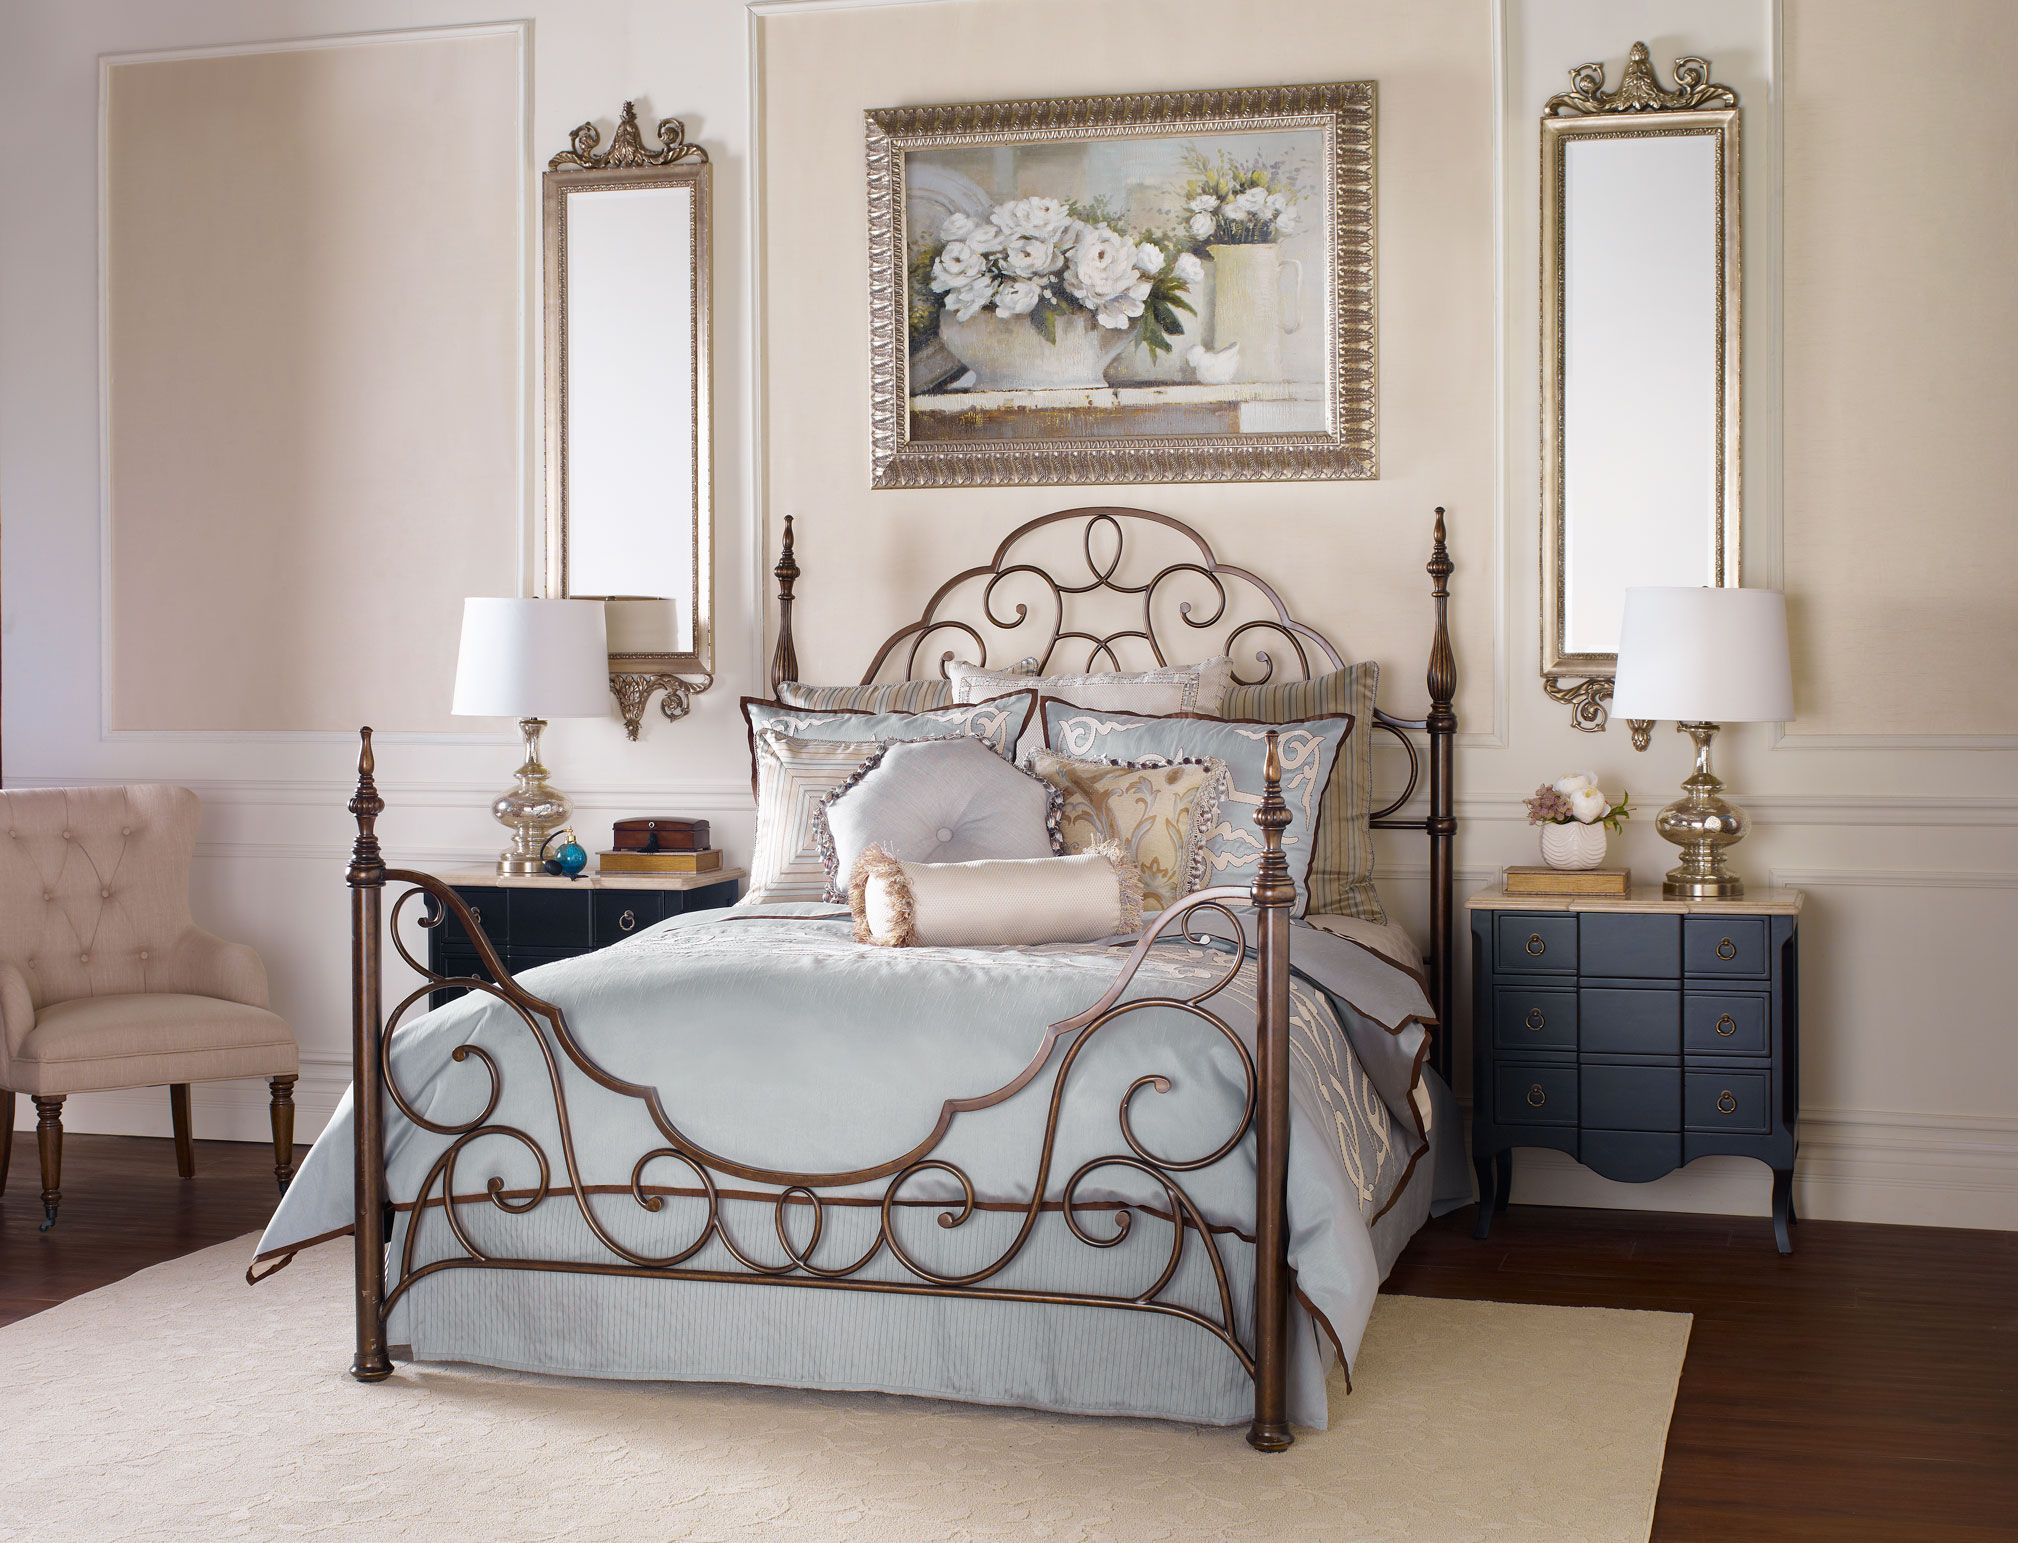 Deauville Bed Bombay Canada Home Home Decor Bedroom